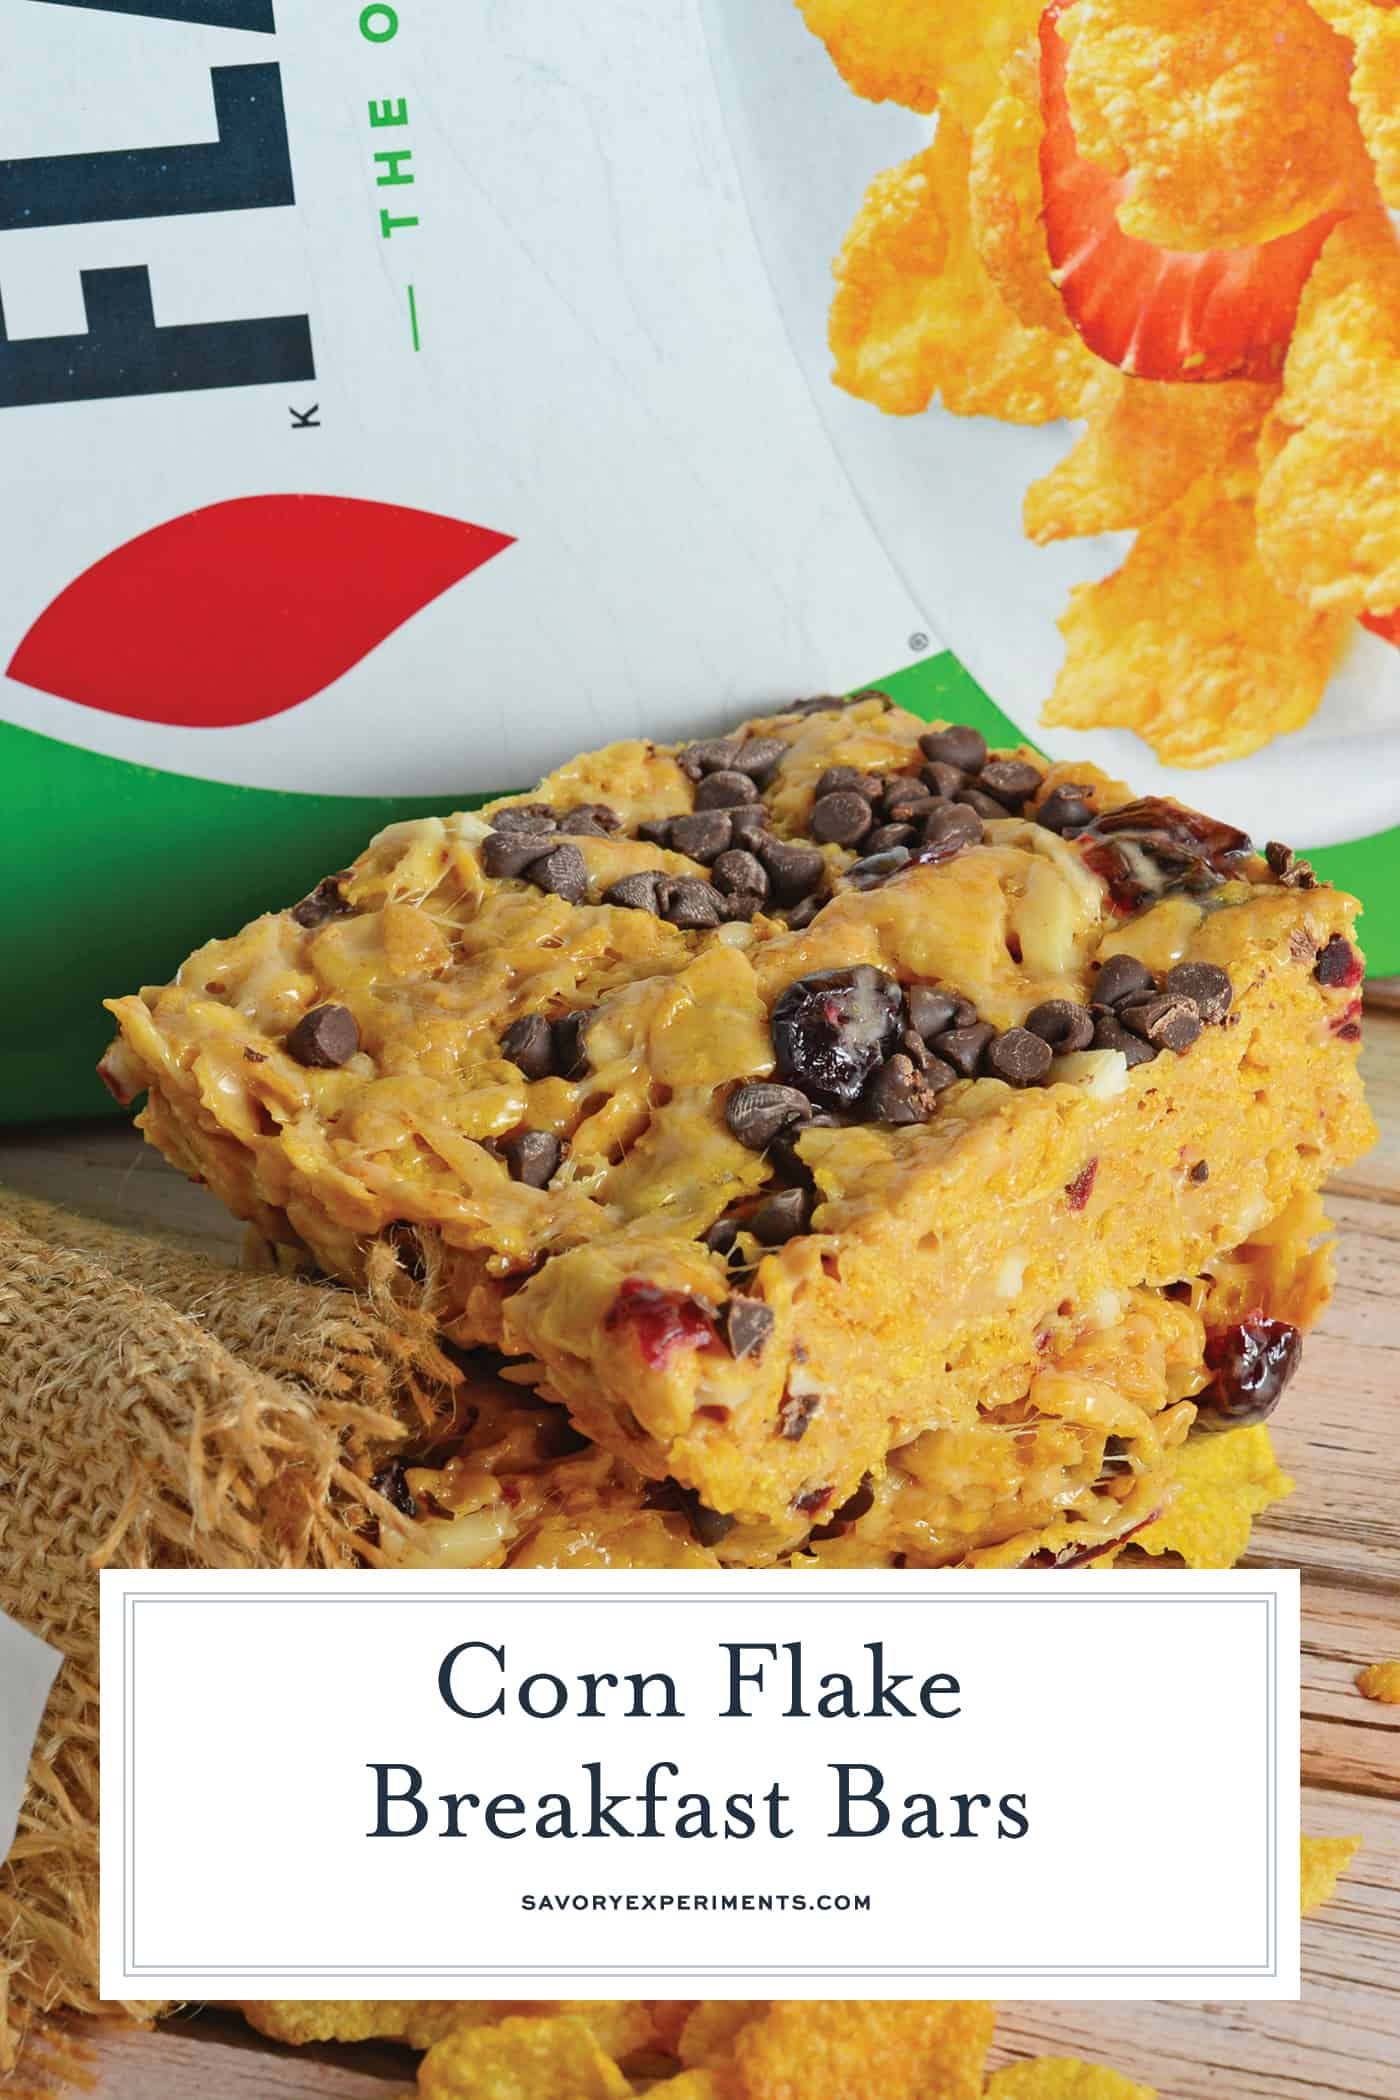 recipes using corn flakes